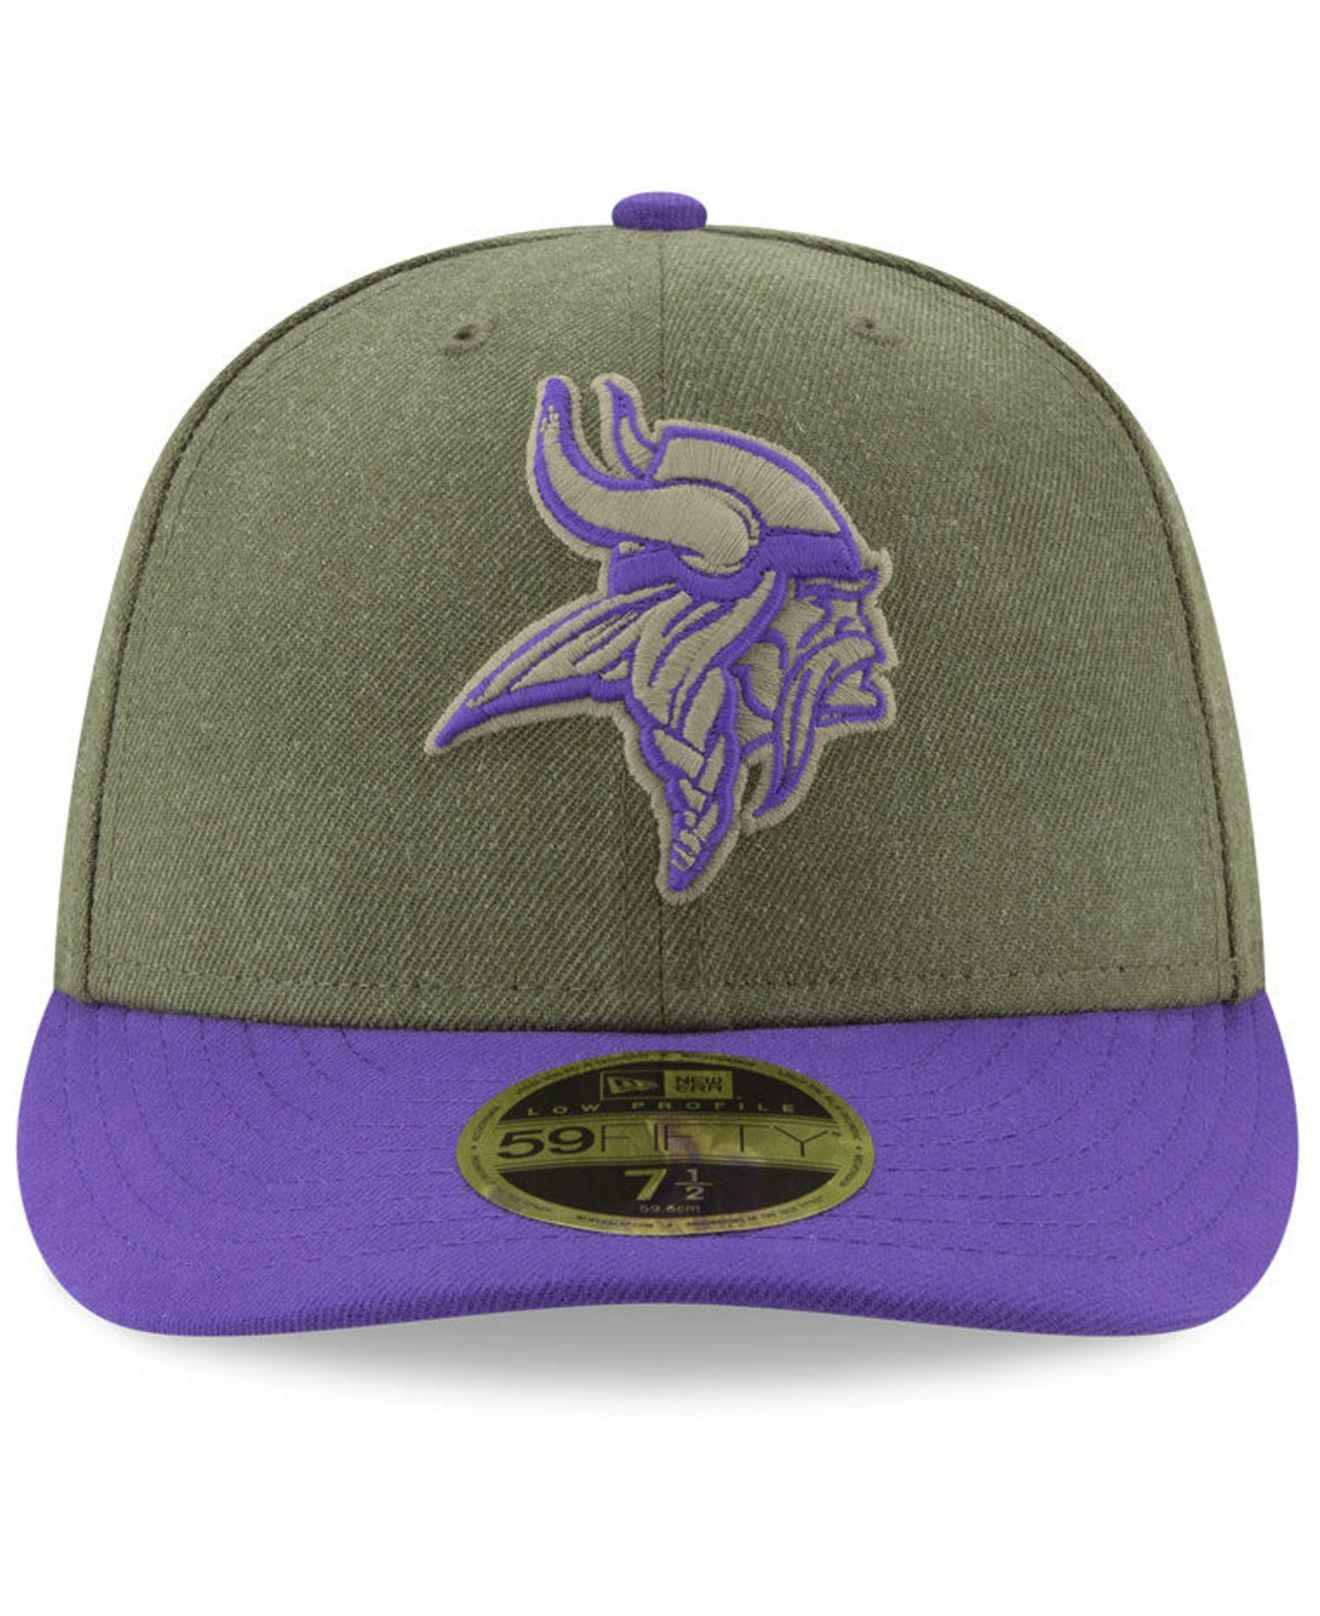 Lyst - KTZ Minnesota Vikings Salute To Service Low Profile 59fifty Fitted  Cap 2018 in Green for Men aa300f0b1